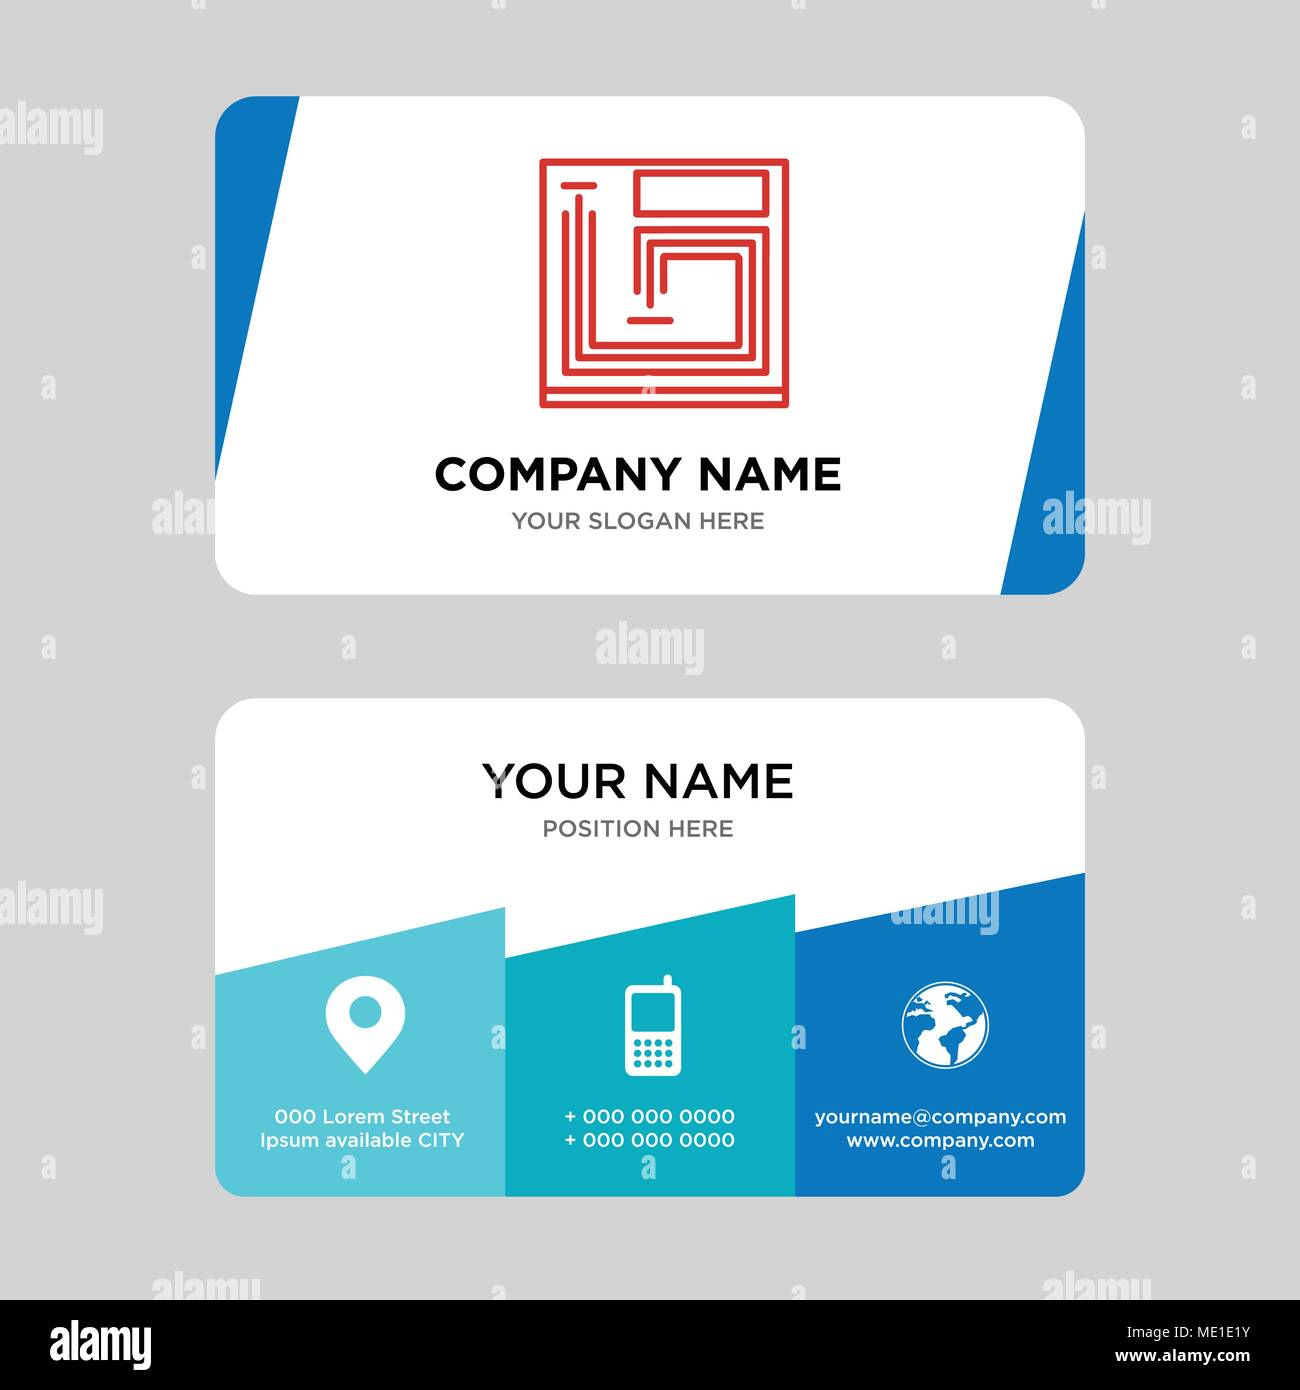 Board game business card design template, Visiting for your company ...